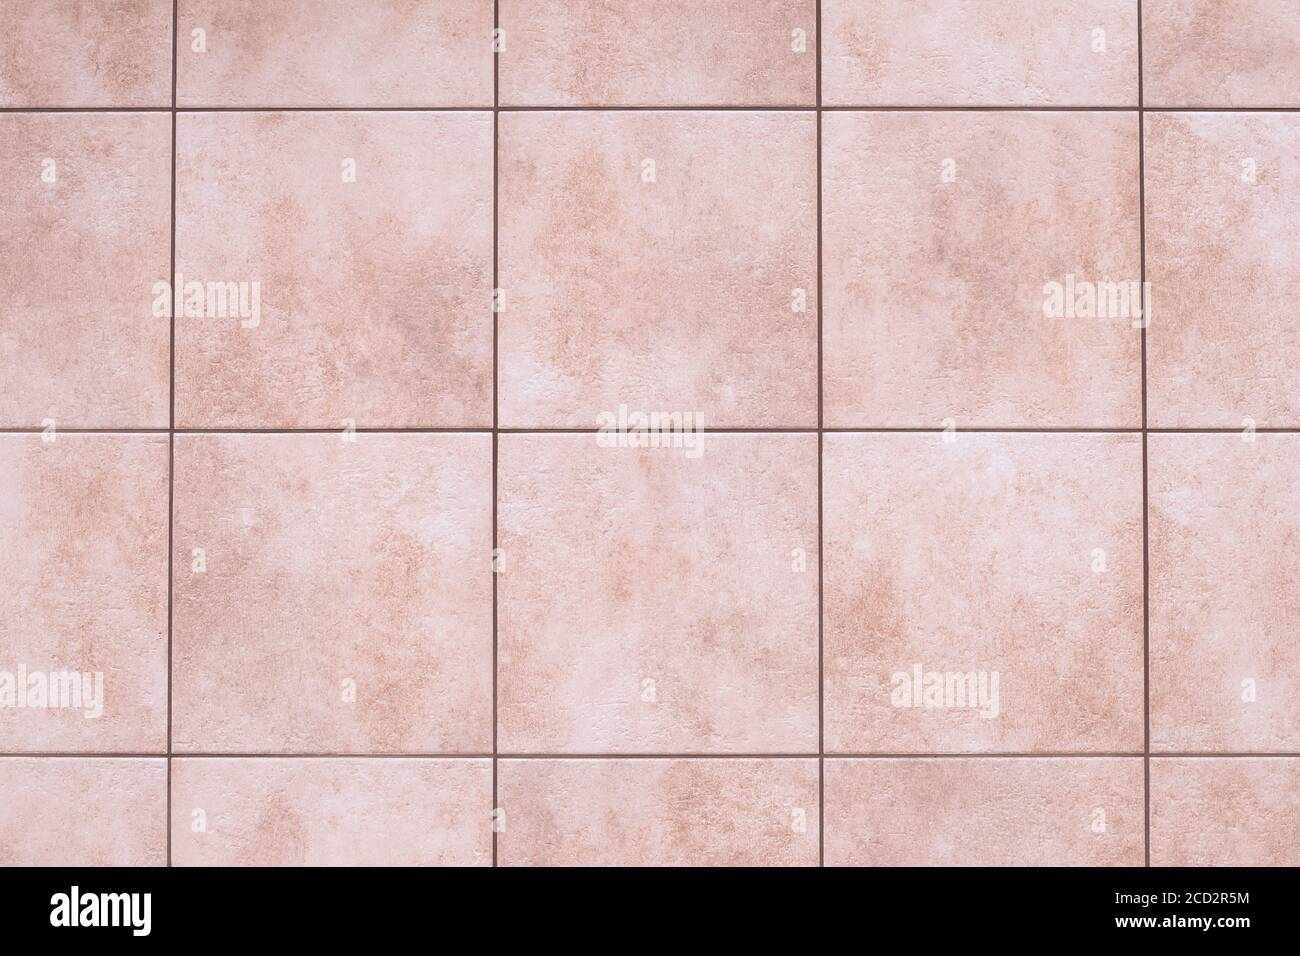 Ceramic Tile Floor Texture Stone Wall Background Square Pattern Smooth Brown Marble In The Kitchen Bathroom Abstract Grunge Frame Interior Eleme Stock Photo Alamy